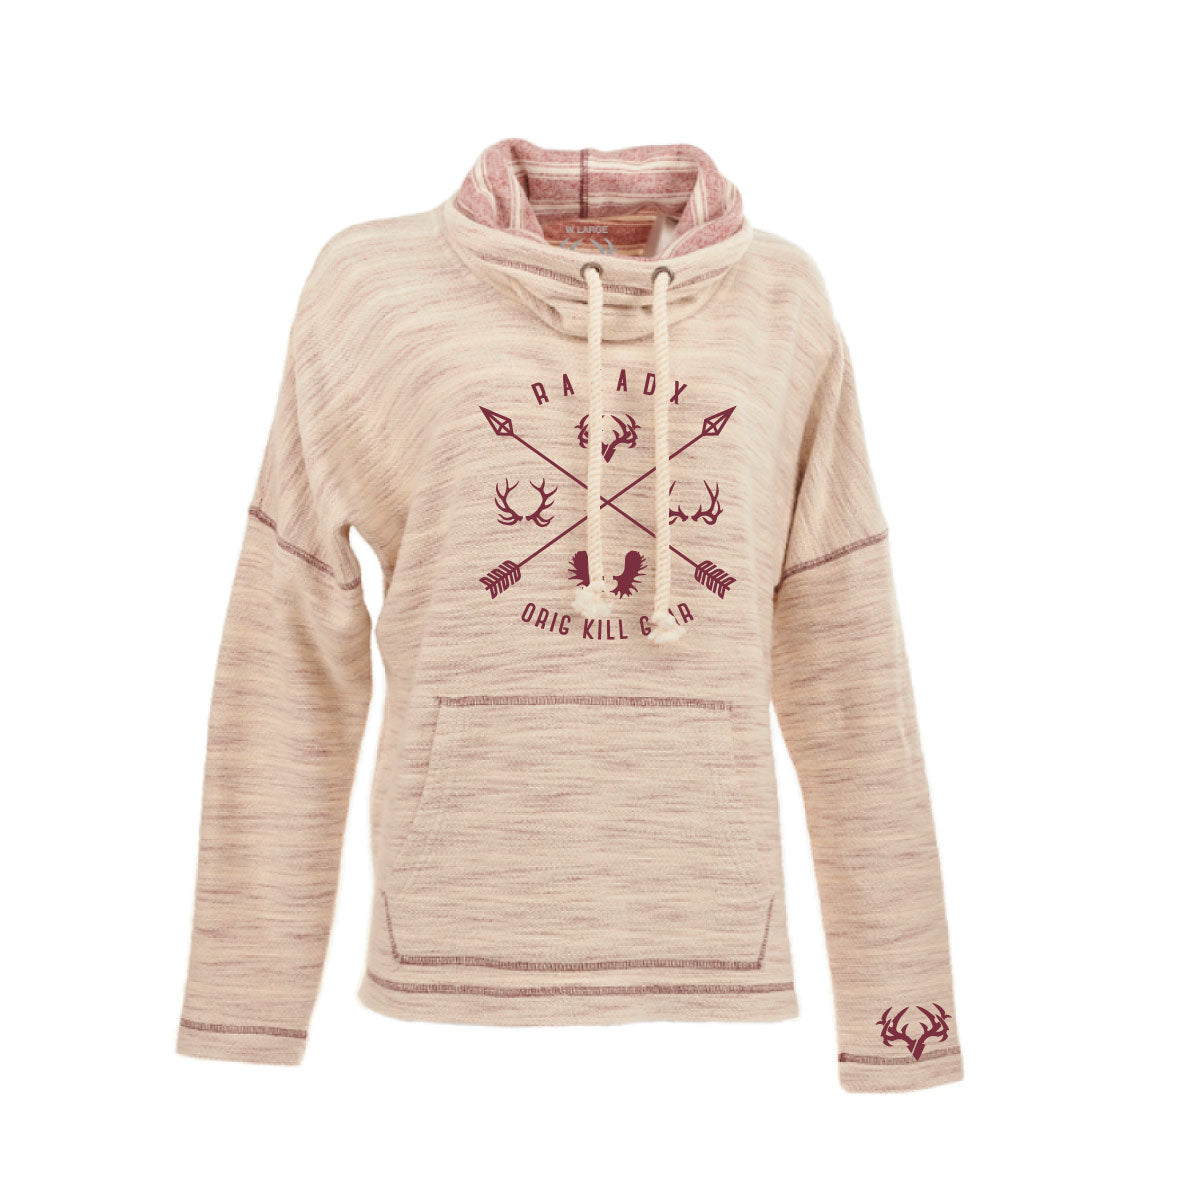 Ladies Crisscross Cowl-neck Sweatshirt with Antlers